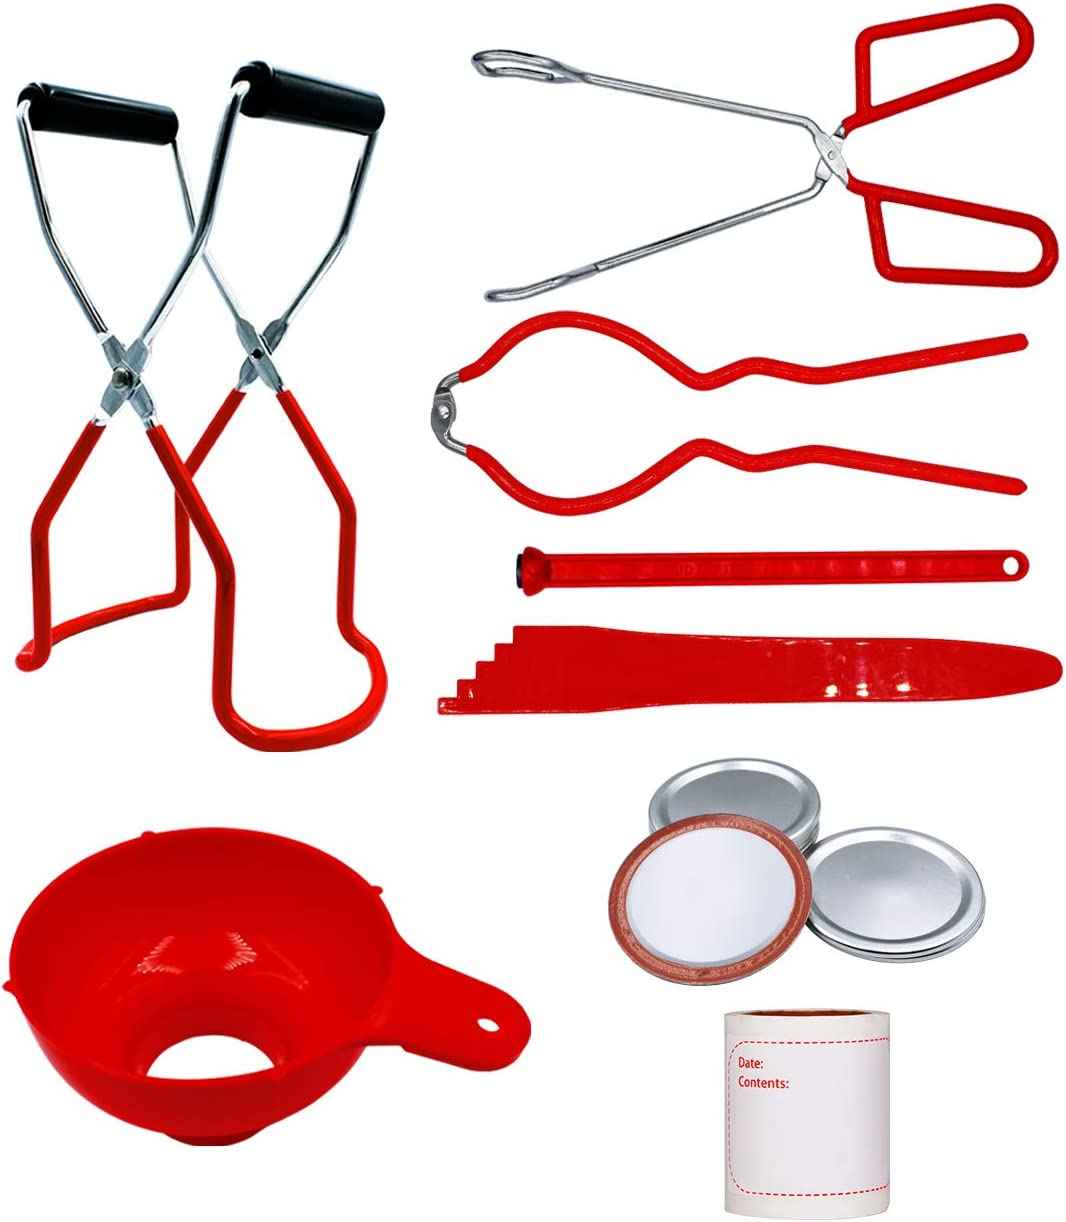 Canning Kit, Canning Supplies Starter Kit for Beginners, 8 items: Canning Jar Lifter, Canning Funnel, Mason Jar Wrench, Lid Lifter, Tongs, Bubble Popper, Mason Jar Lids, Mason Jar Labels